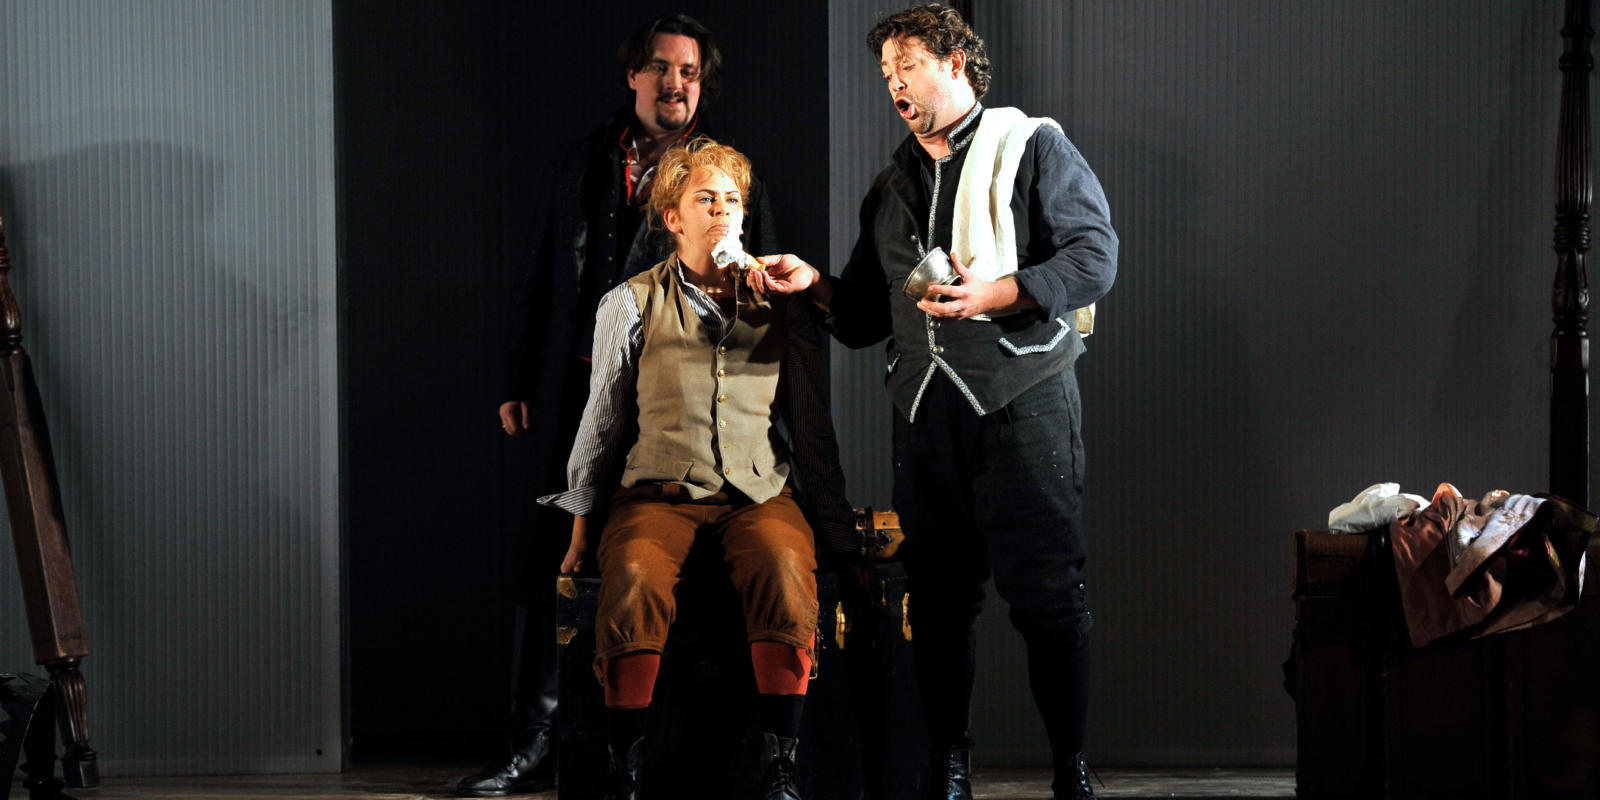 An image of Benedict Nelson, Samantha Price and David Stout in Fiona Shaw's 2014 production of The Marriage of Figaro